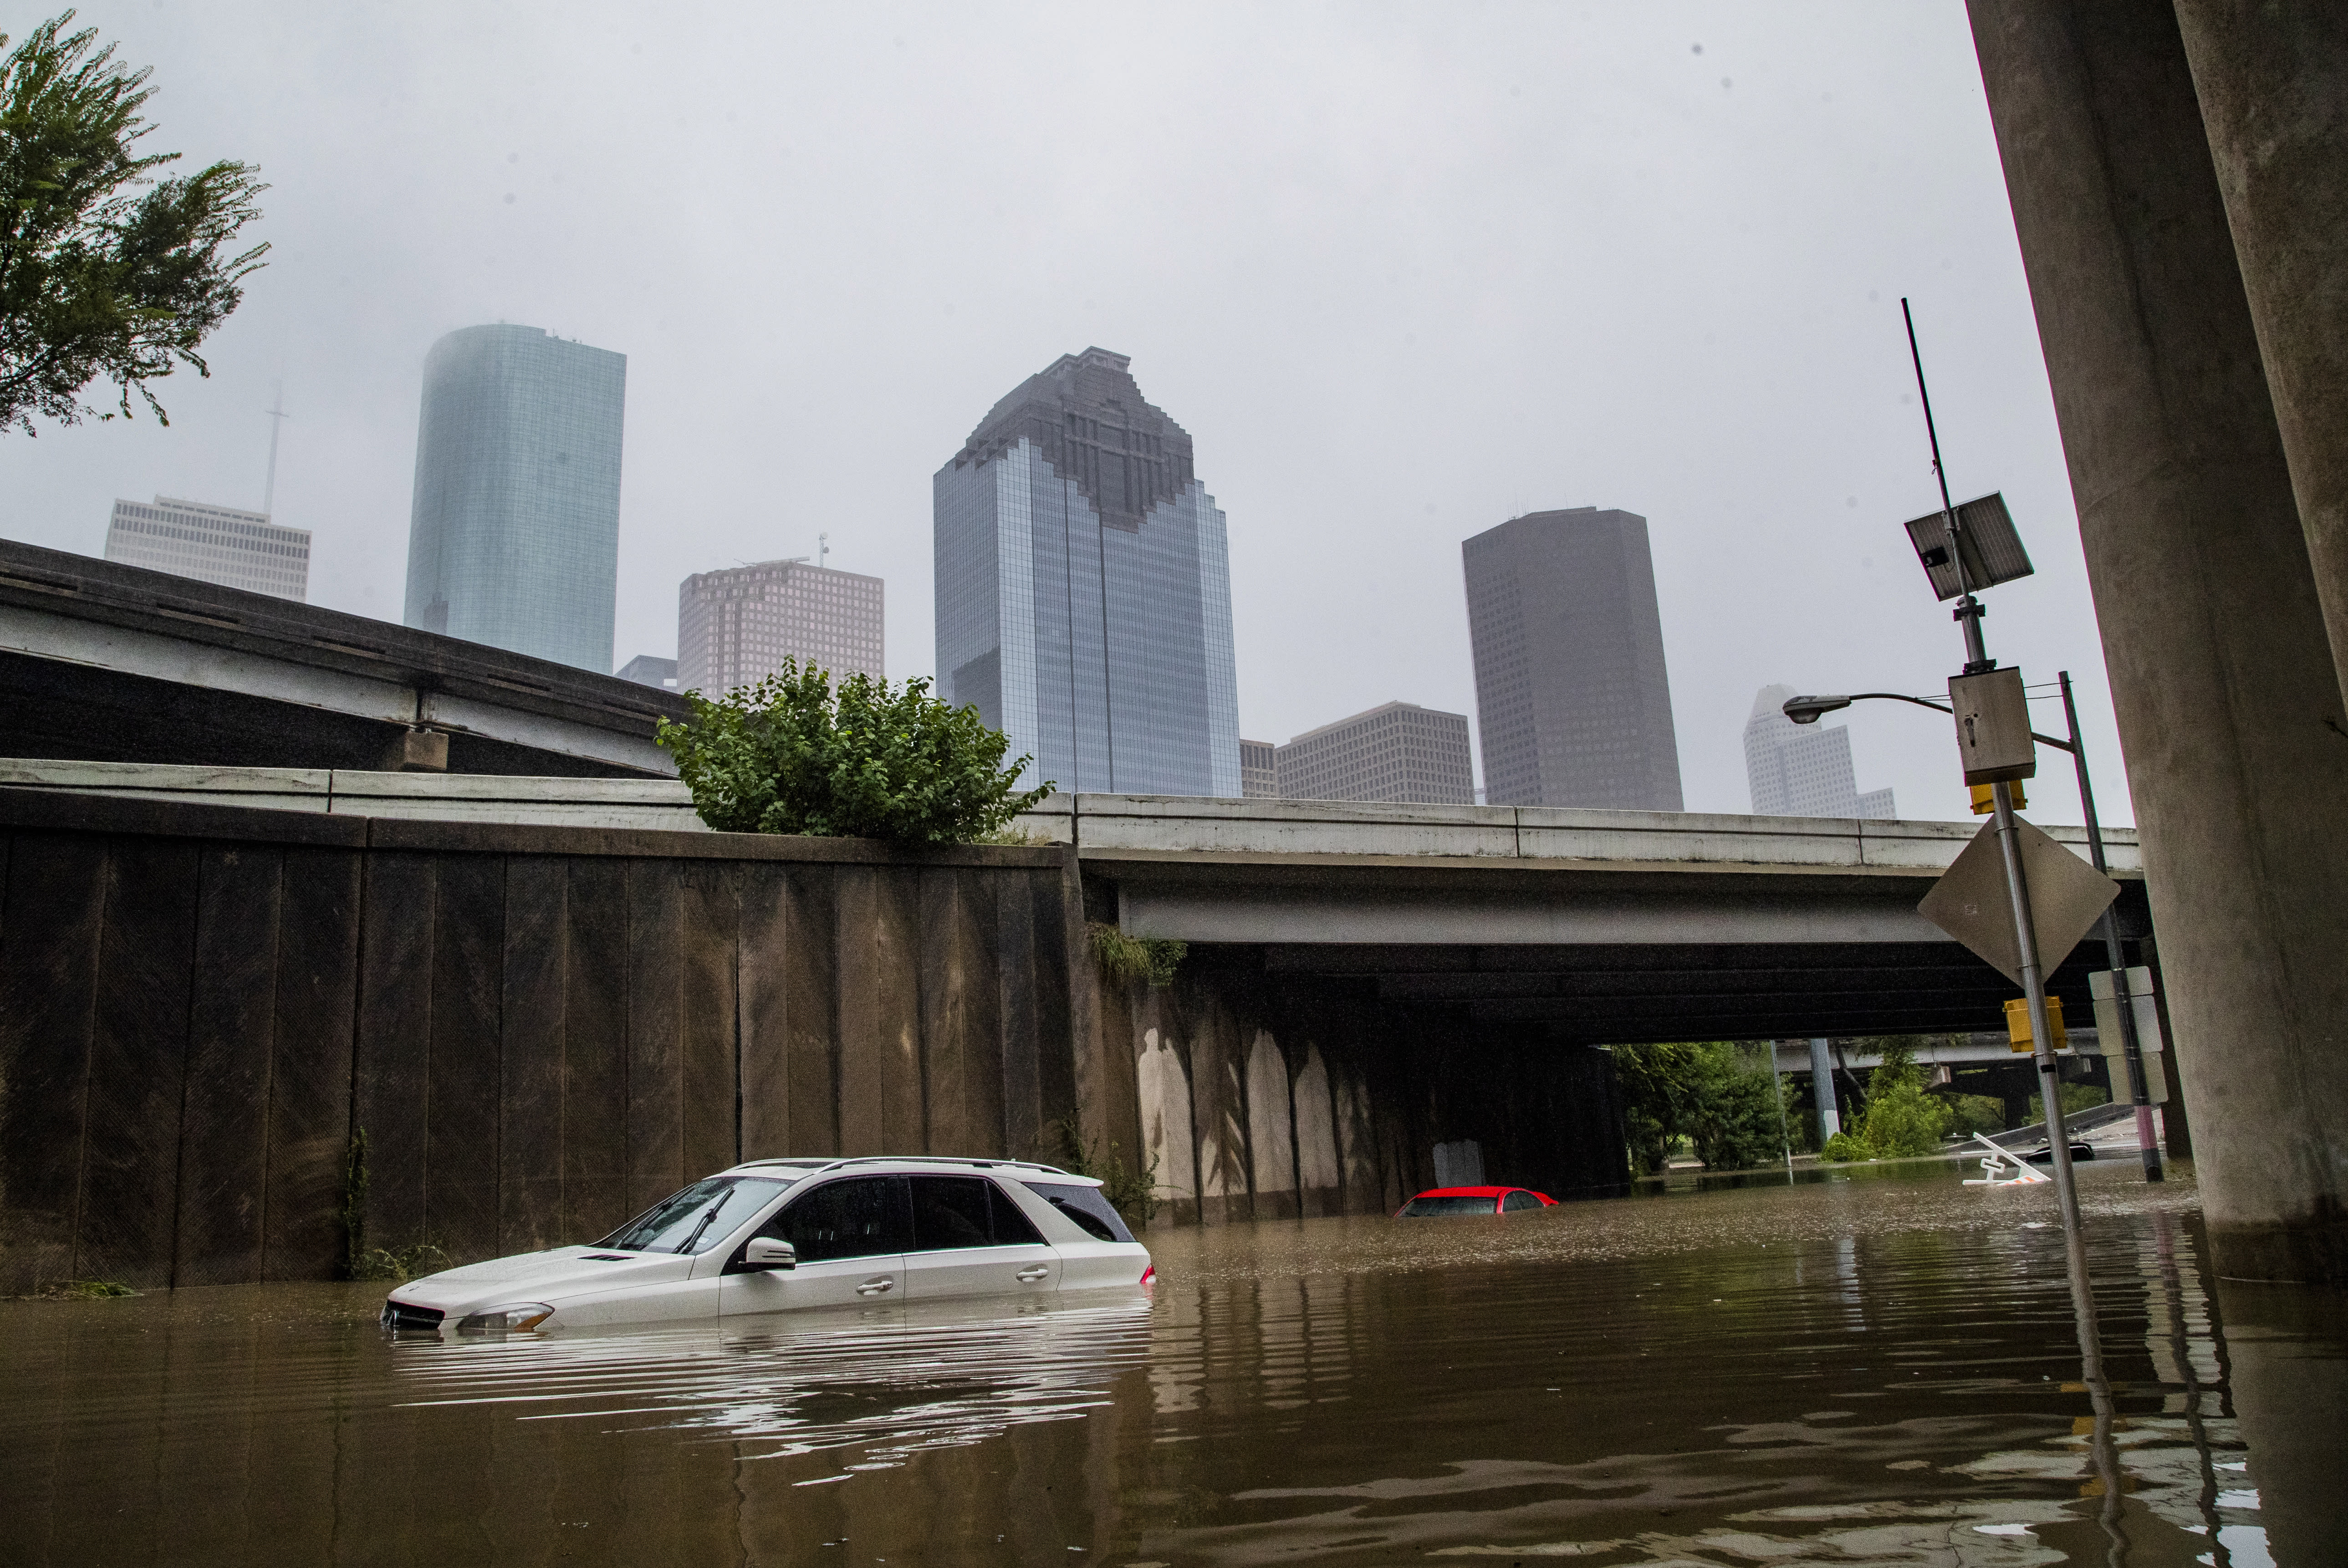 Cars get stranded on high flood waters on Houston Ave. exit from Interstate 45 during Tropical Storm Beta Tuesday, Sept. 22, 2020, in Houston. (Marie D. De Jesus/Houston Chronicle via AP)